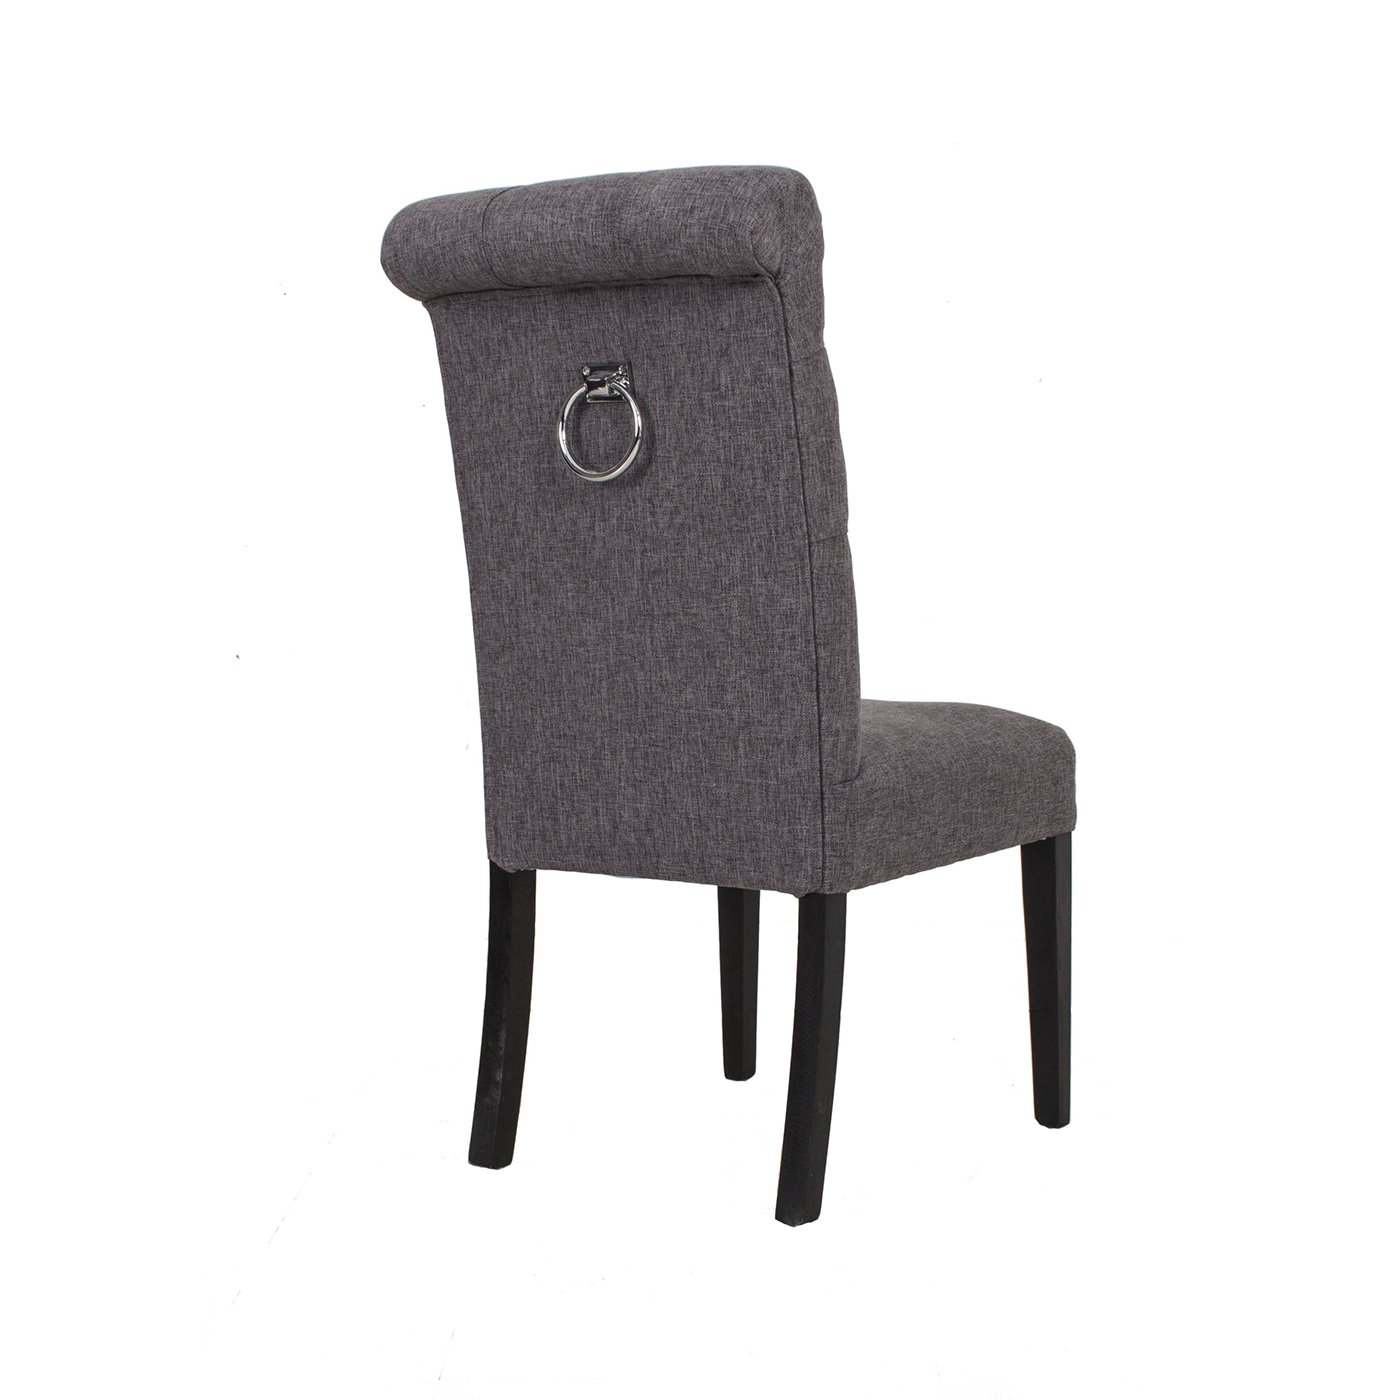 Jemima Knocker Dining Chair Grey – Glam Home Store